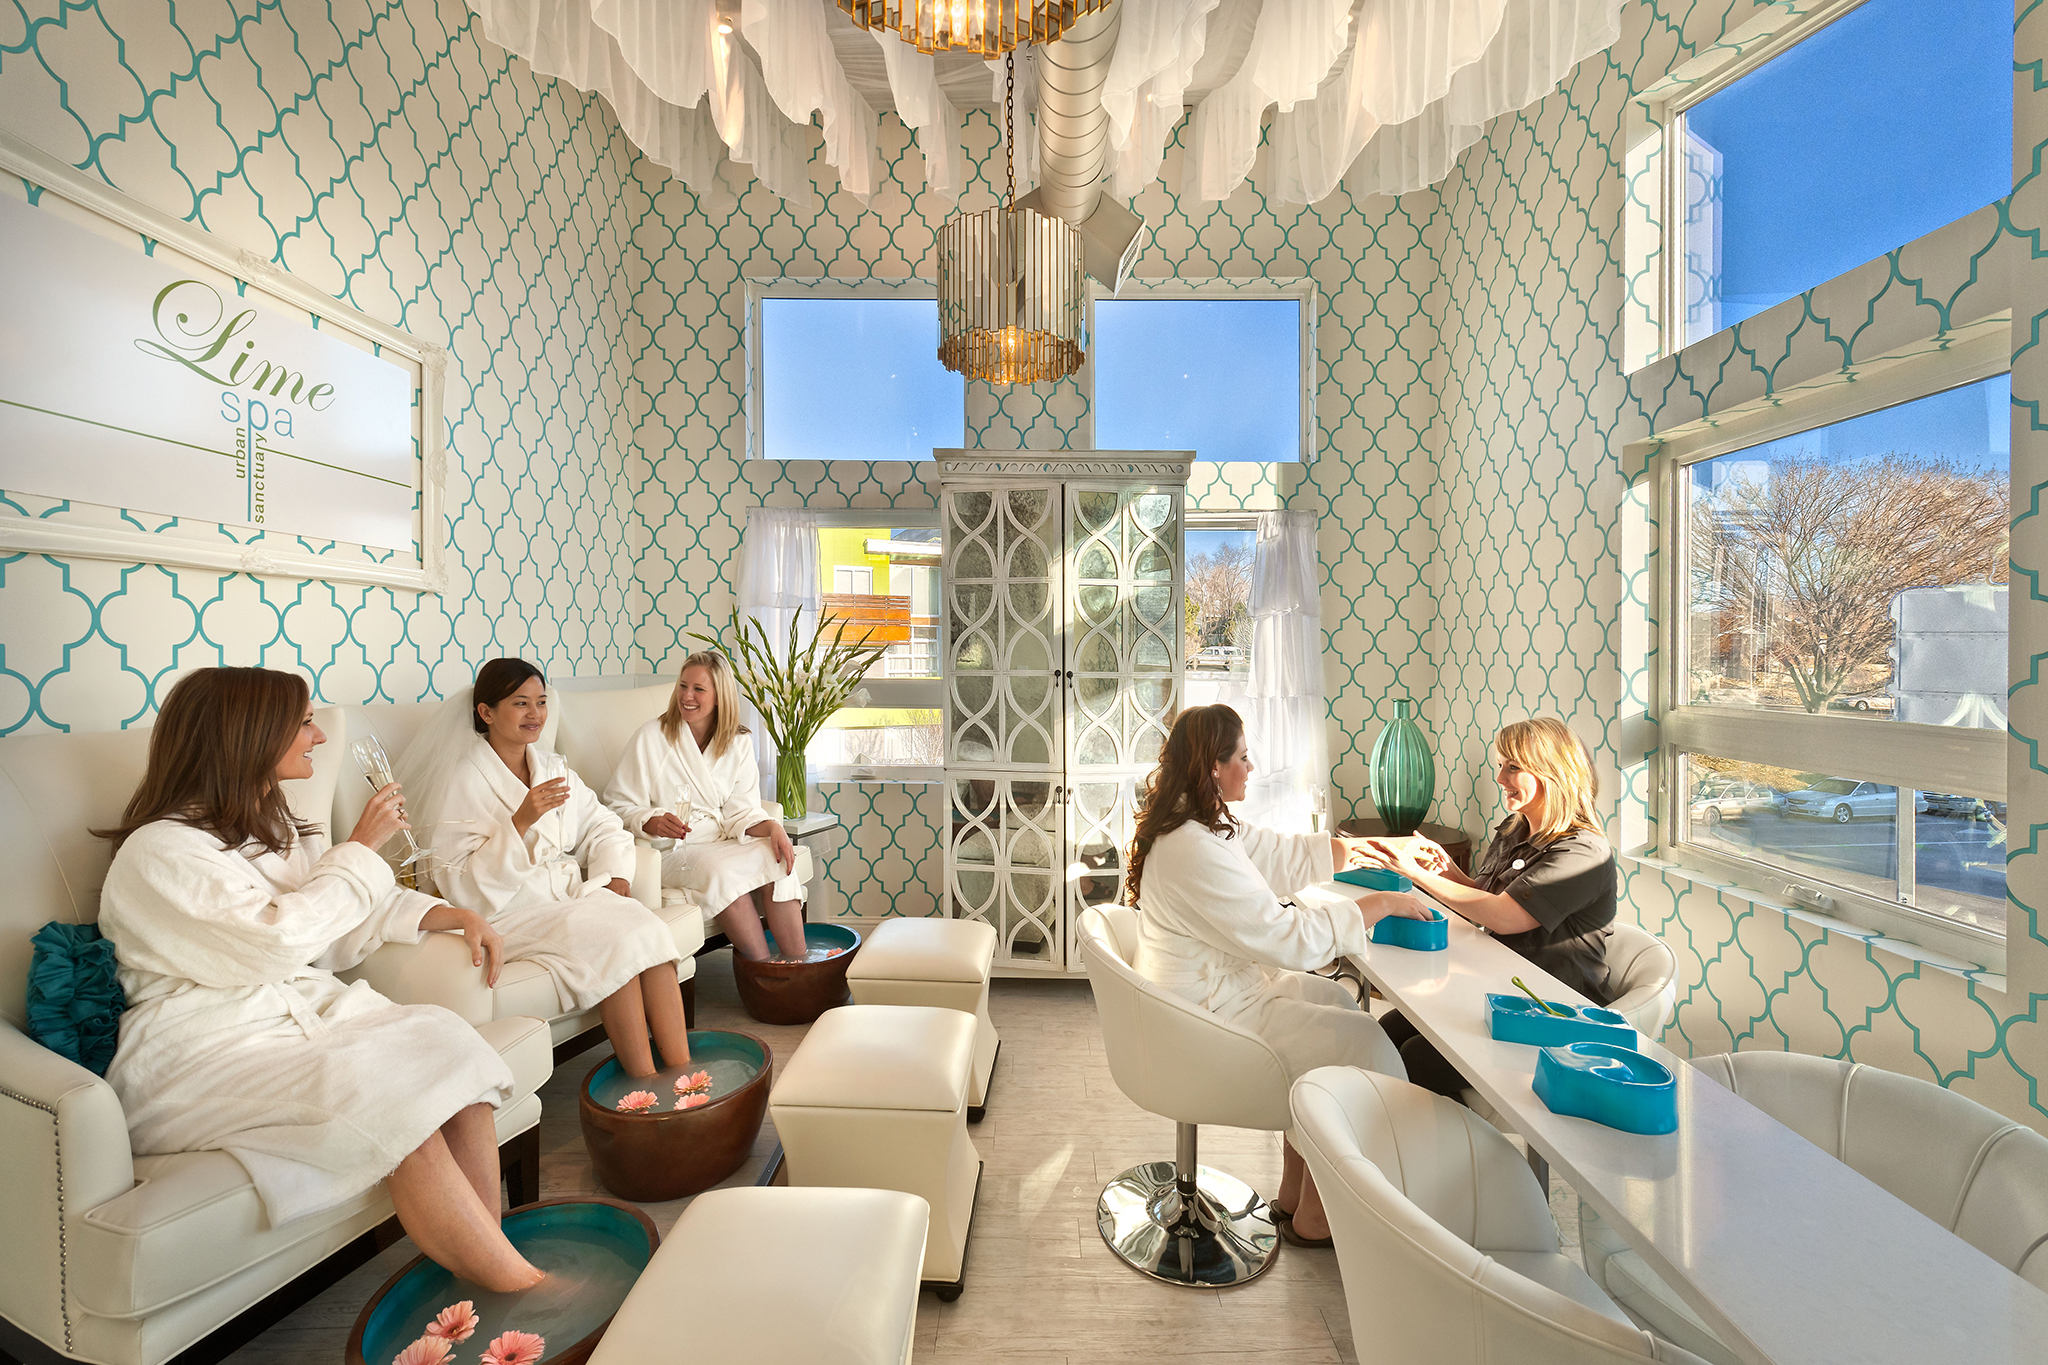 Find the best spa in los angeles for pampering and pure for A beautiful you salon